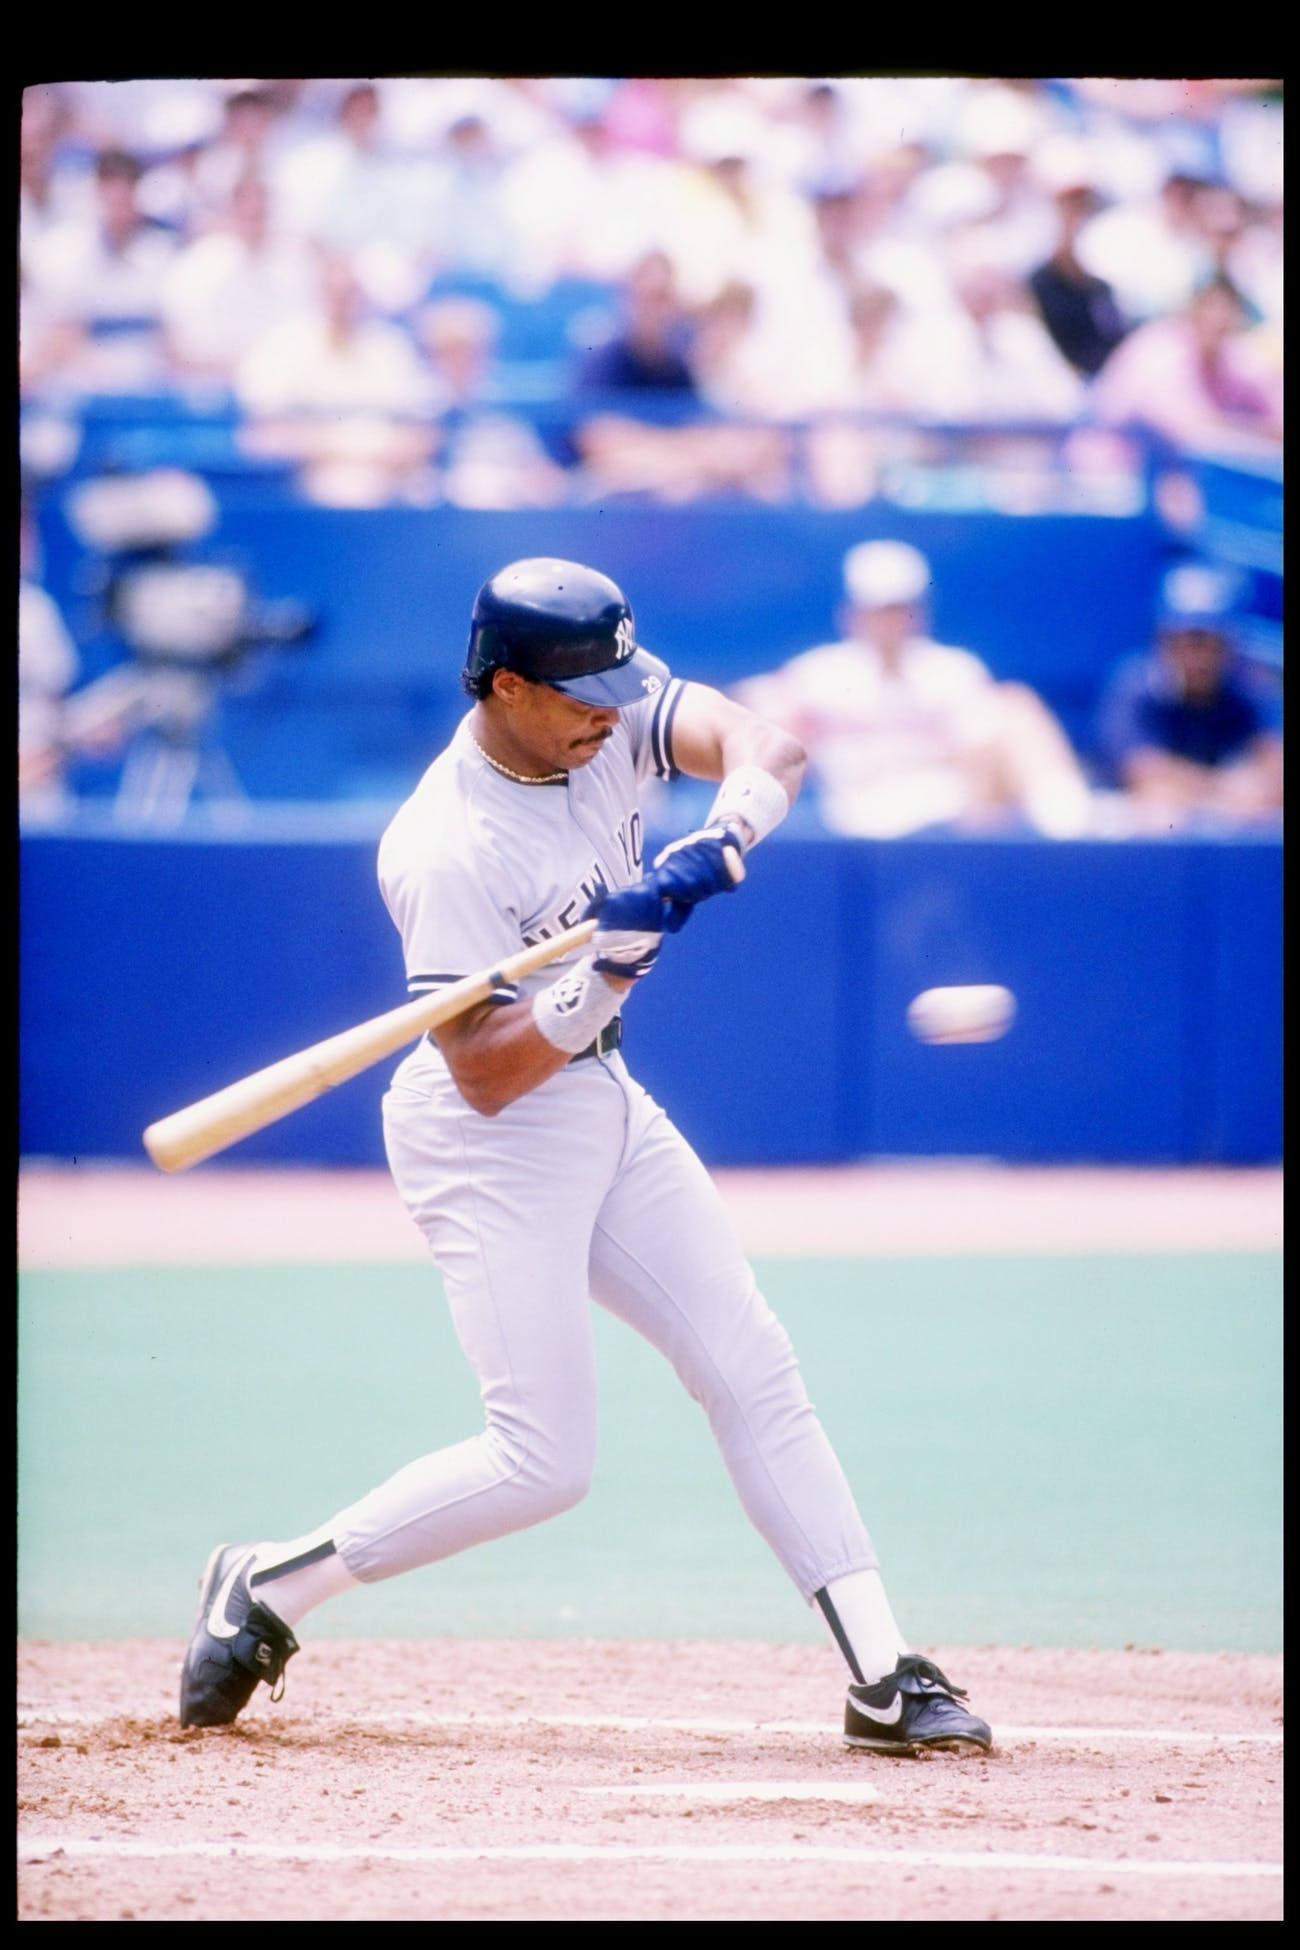 1989: Outfielder Jesse Barfield of the New York Yankees in action during a game. Mandatory Credit: Rick Stewart /Allsport